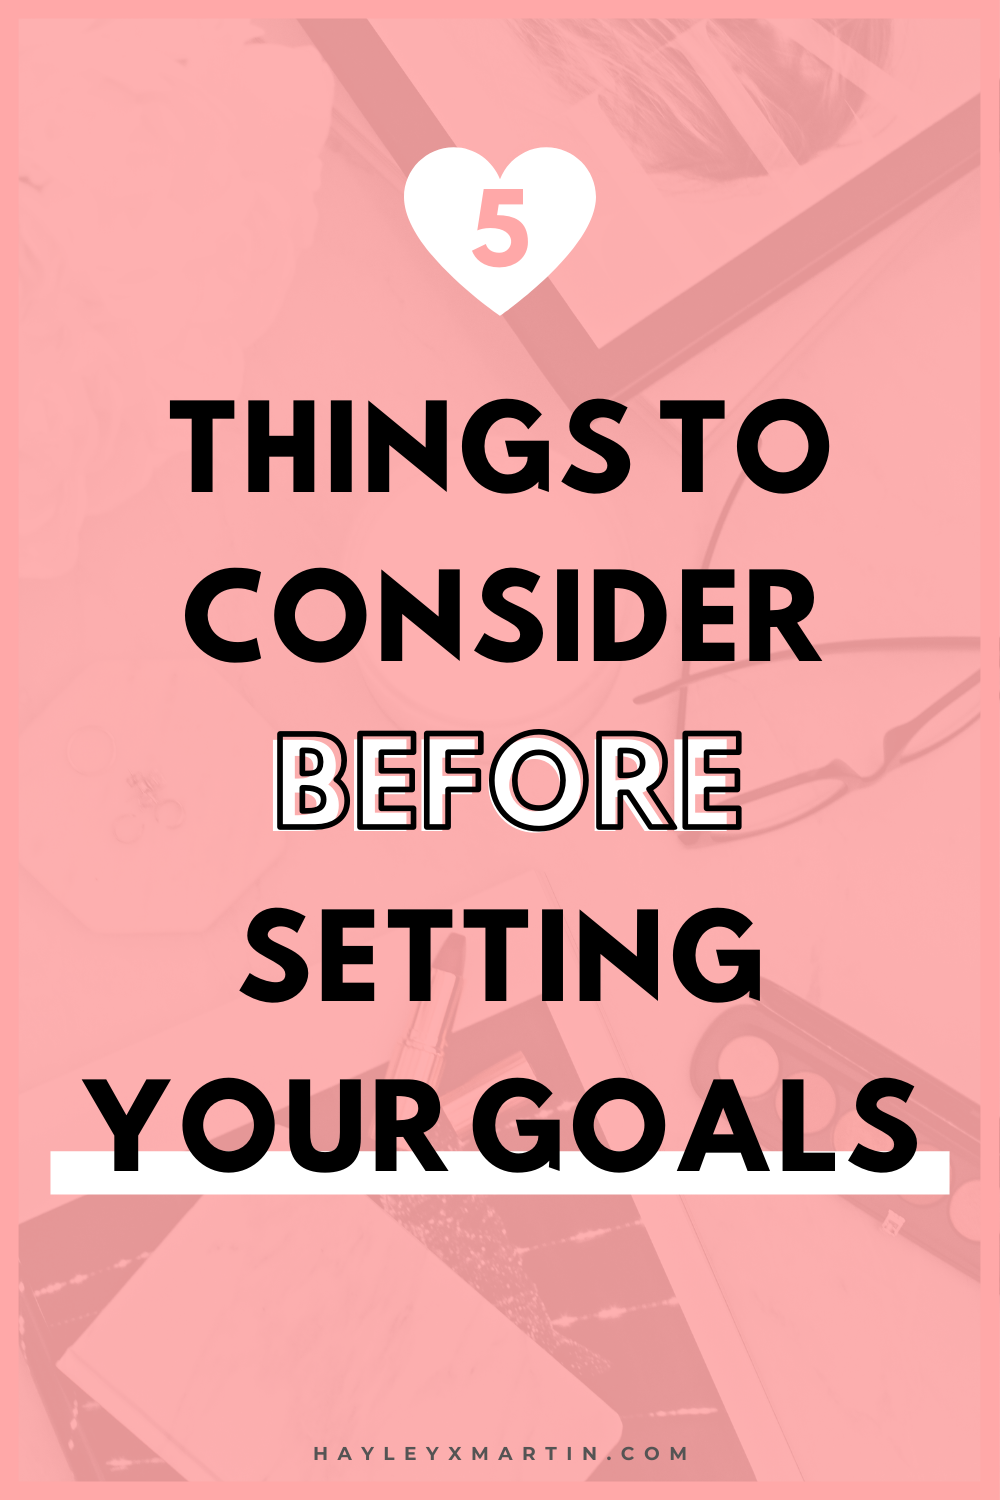 5 THINGS TO CONSIDER BEFORE SETTING YOUR GOALS | HAYLEYXMARTIN